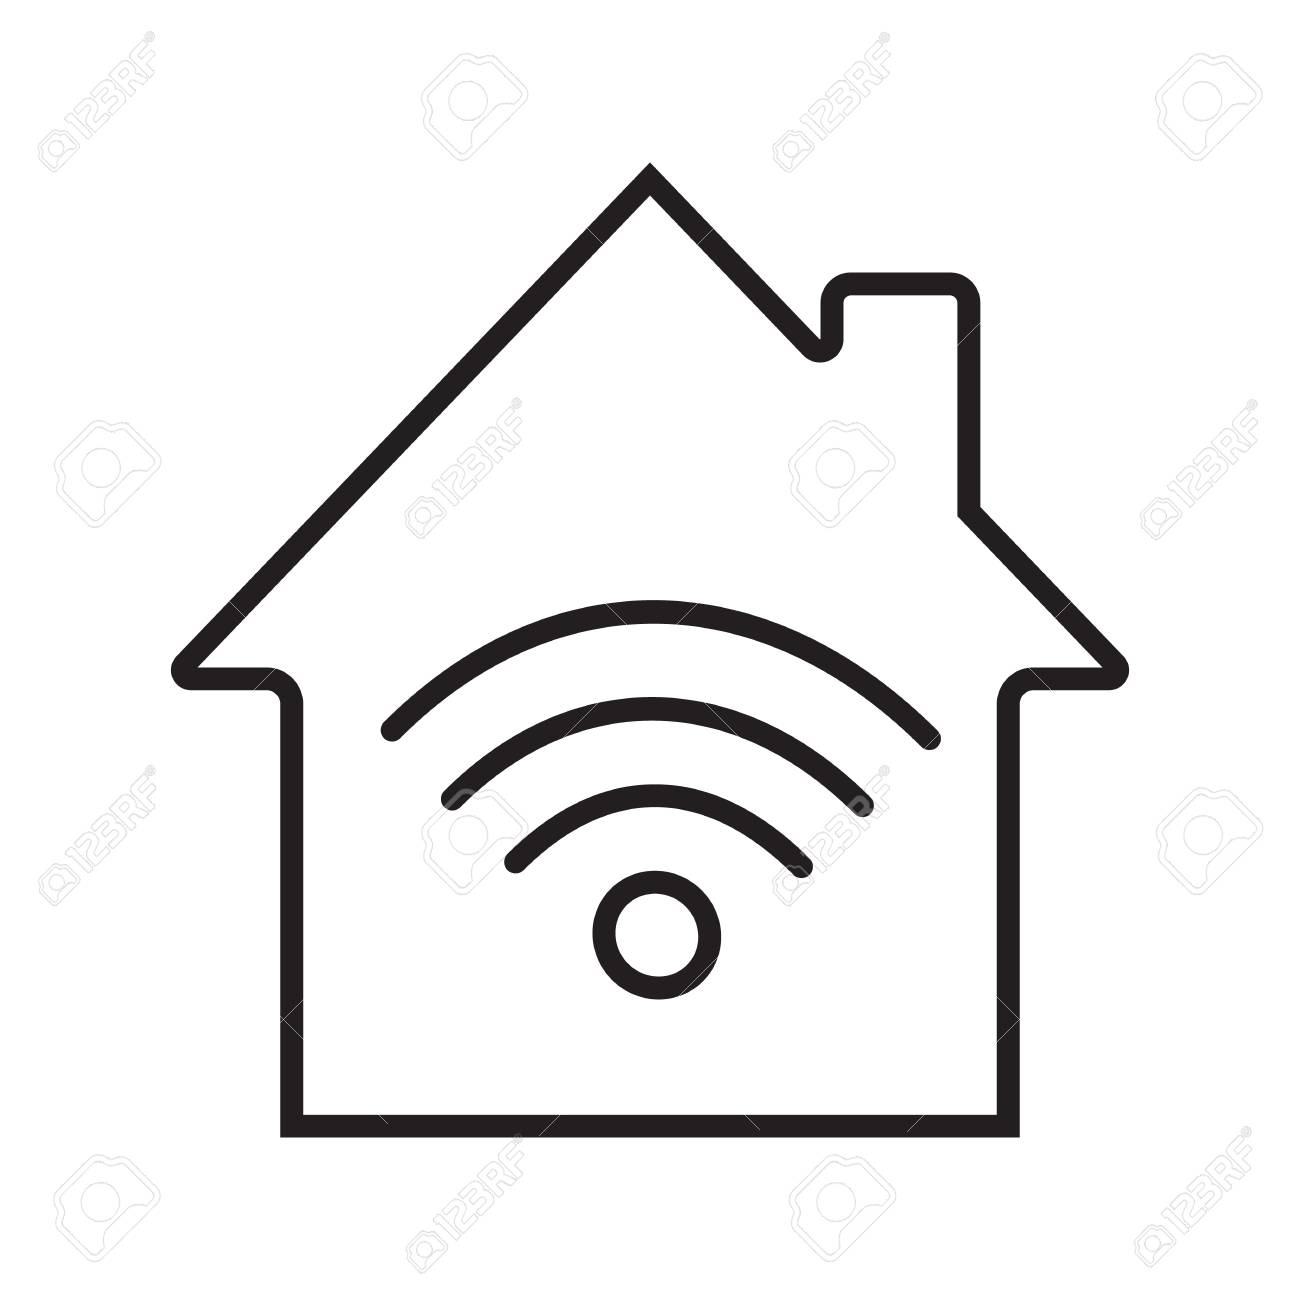 Home internet connection linear icon  Wi fi signal thin line